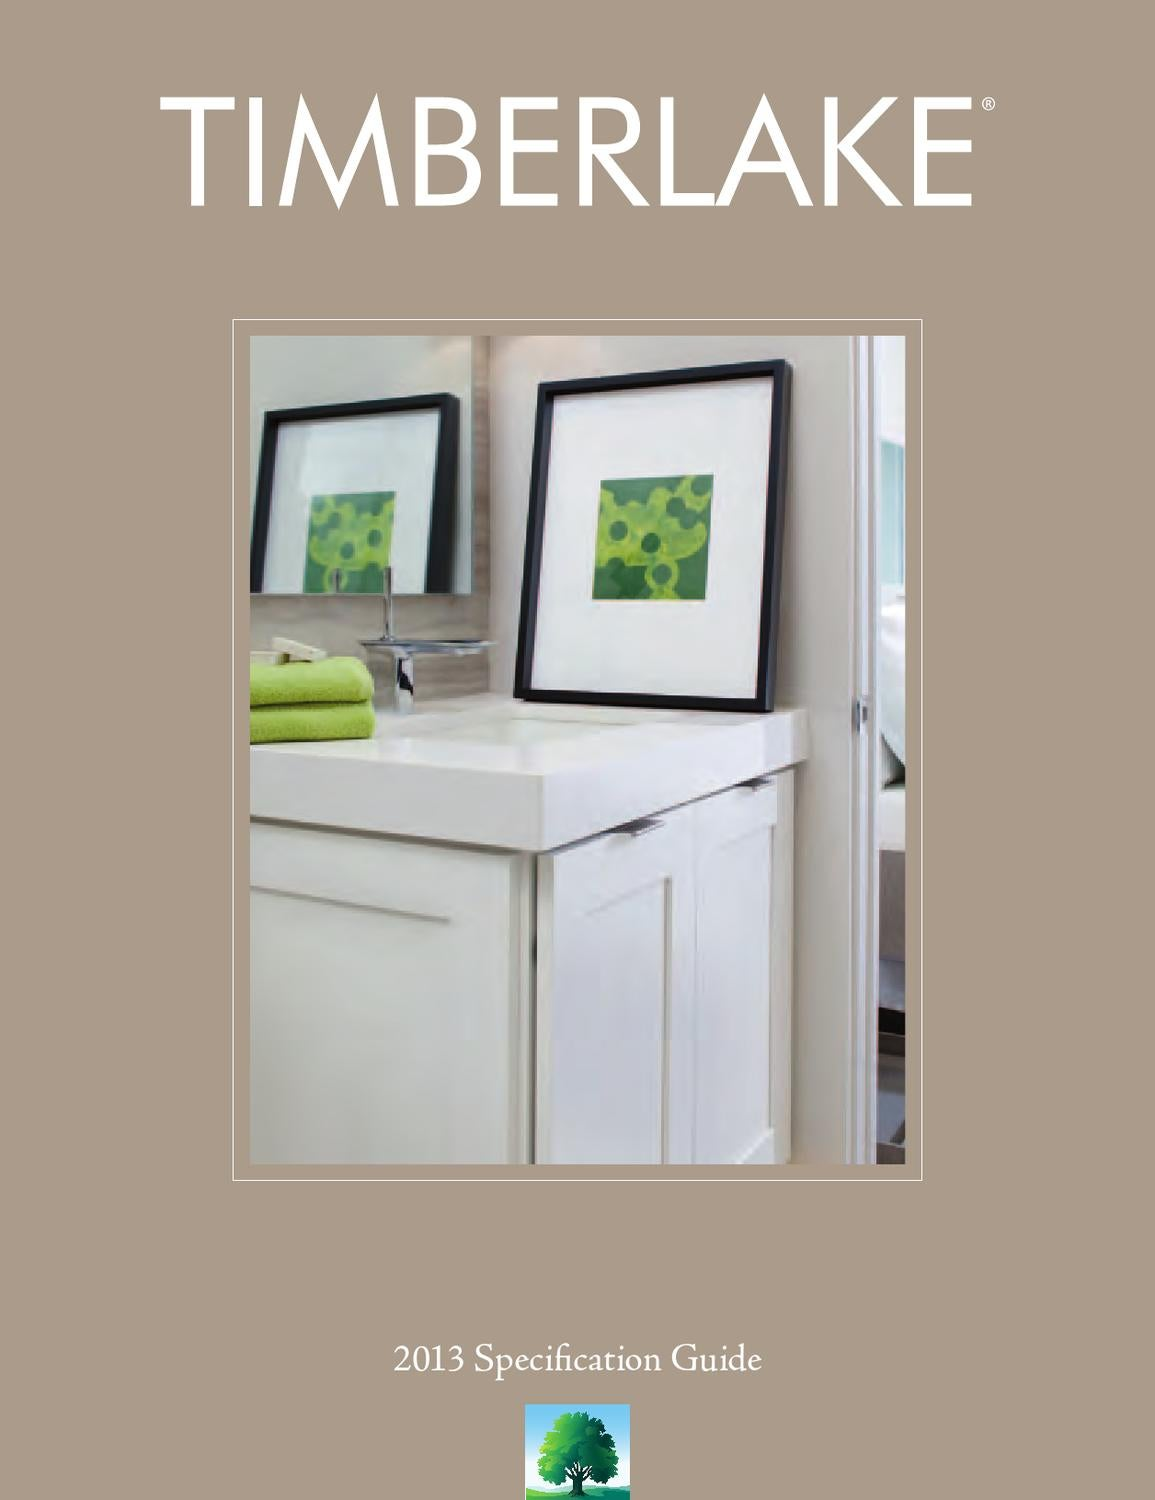 Timberlake Cabinets Pricing Guide - Cabinets Matttroy